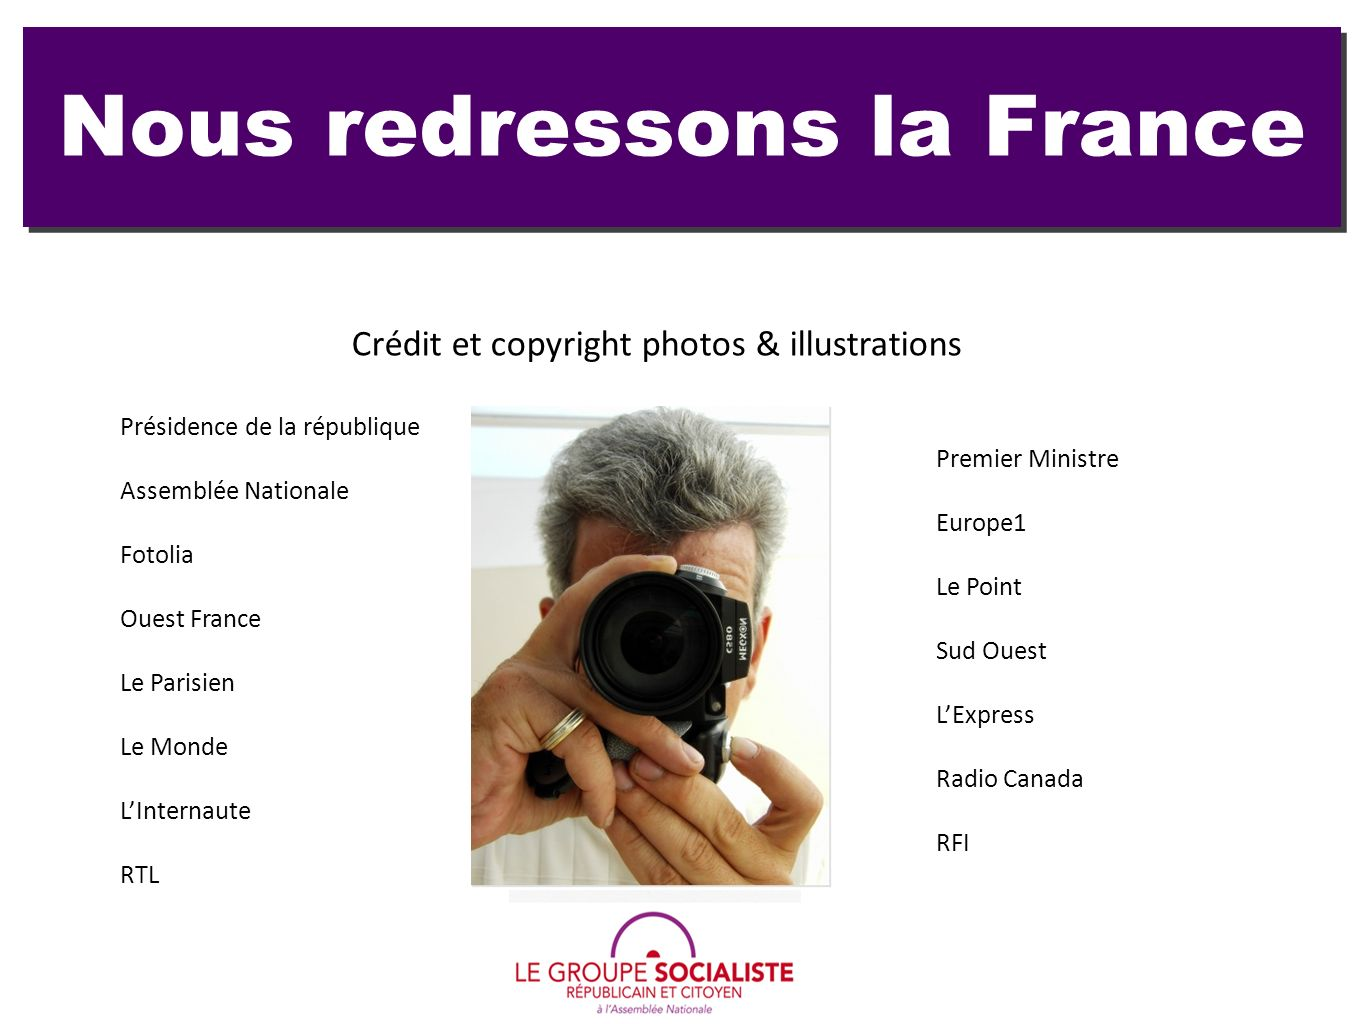 Nous redressons la France